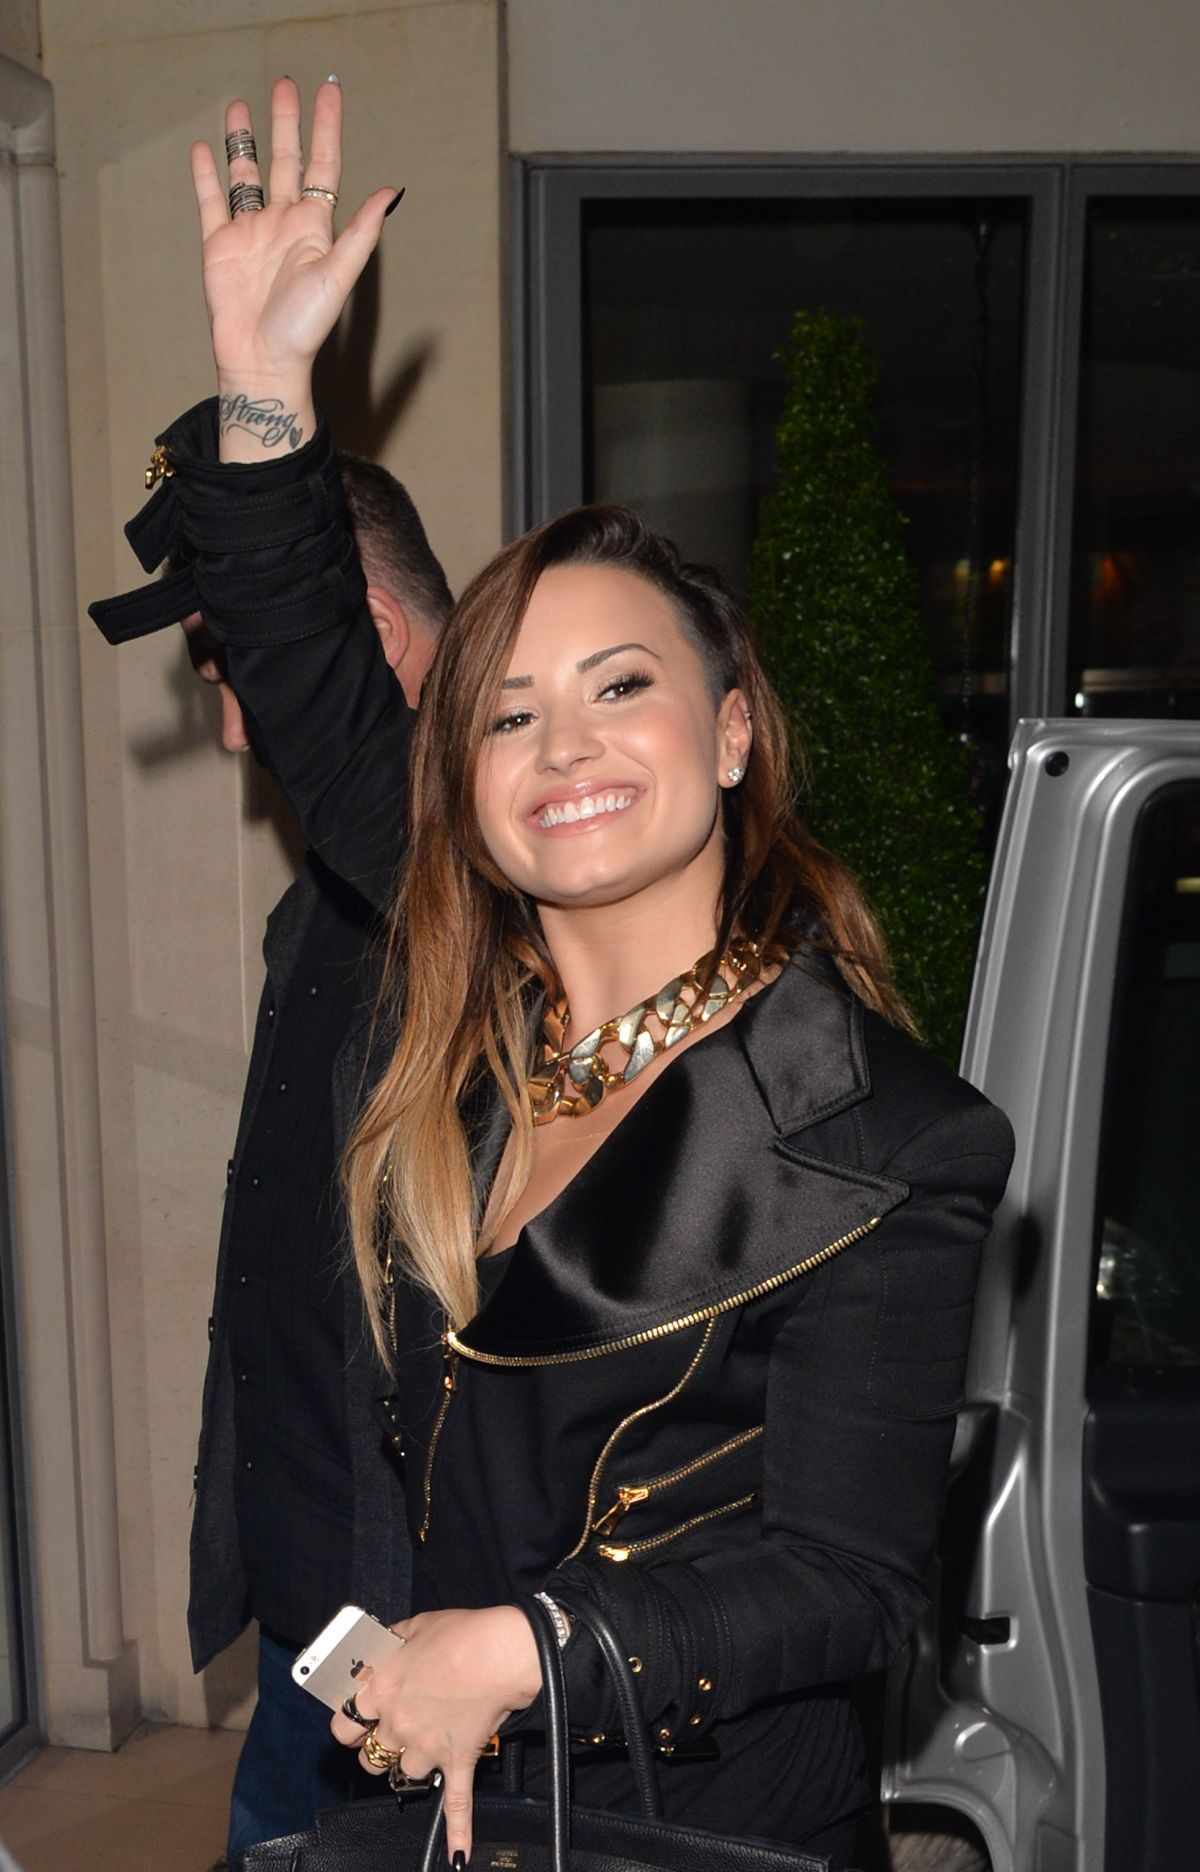 DEMI LOVATO Arrives at Her Hotel in London